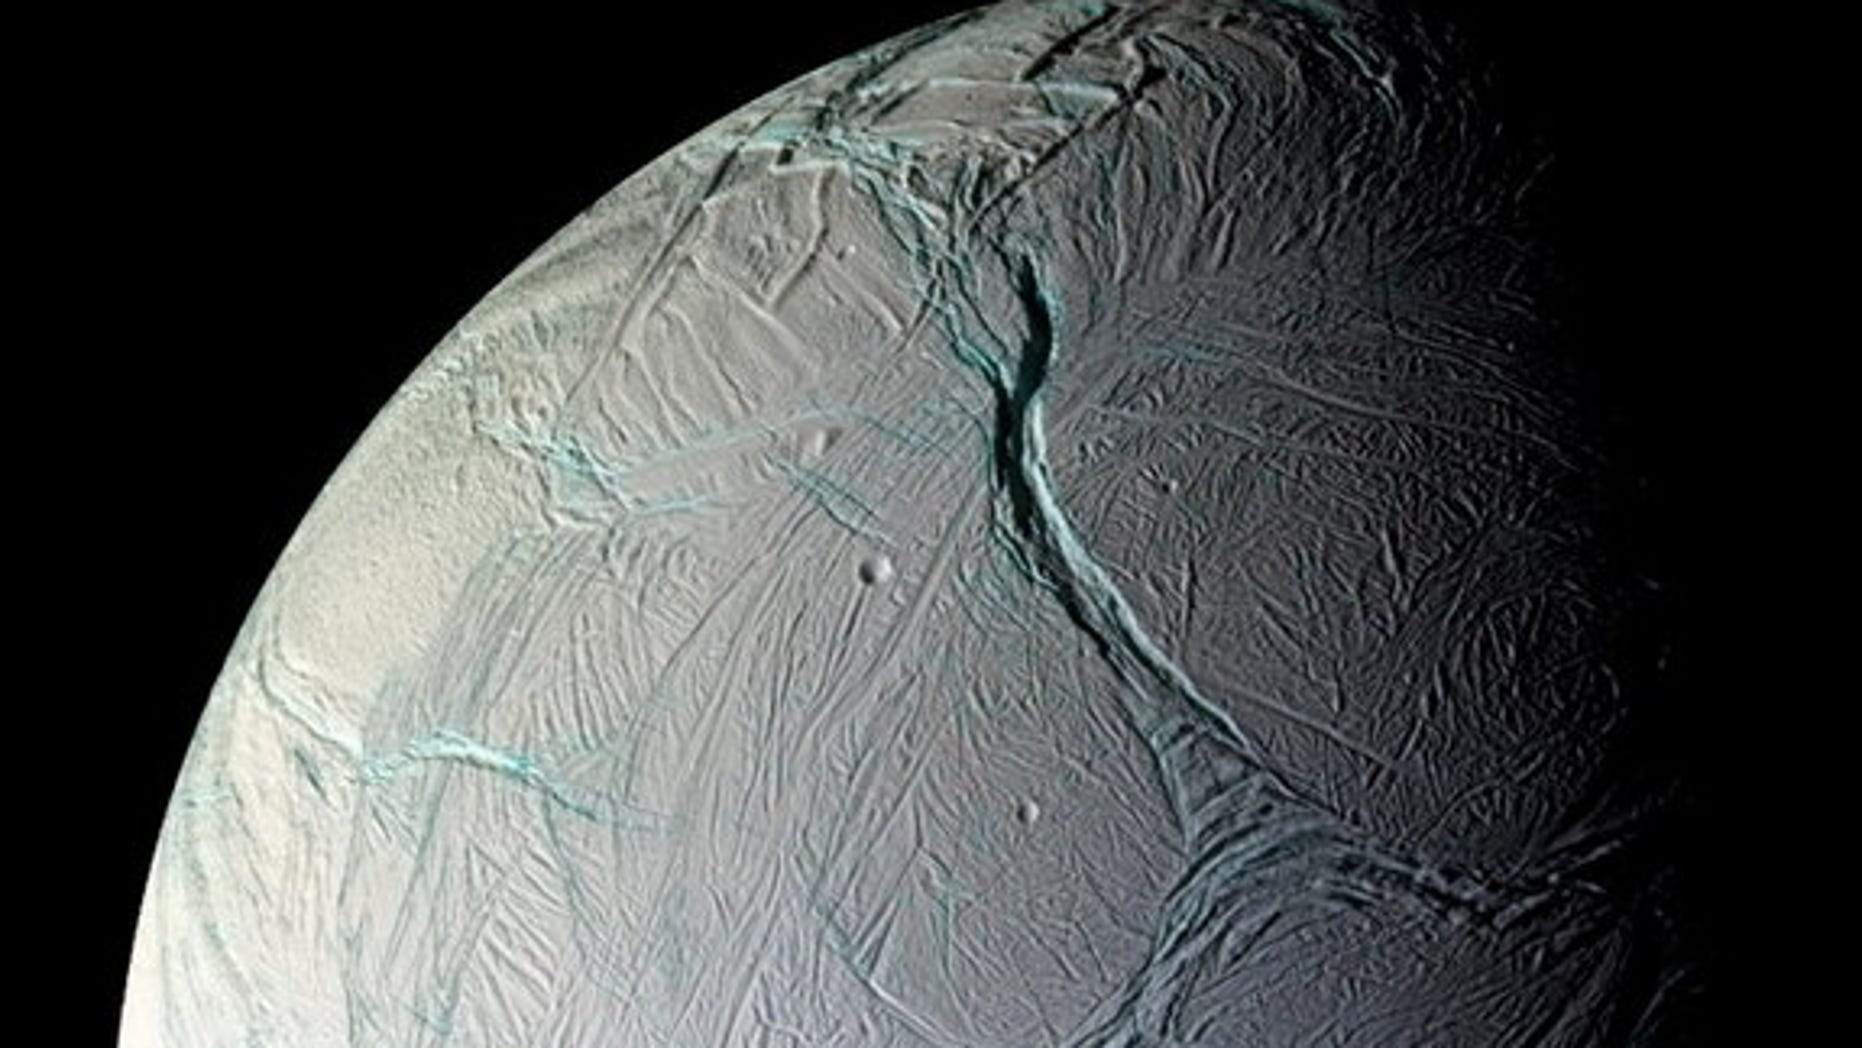 This image of the geyser-spewing Saturn moon Enceladus was taken on Oct. 5, 2008 by NASA's Cassini spacecraft.